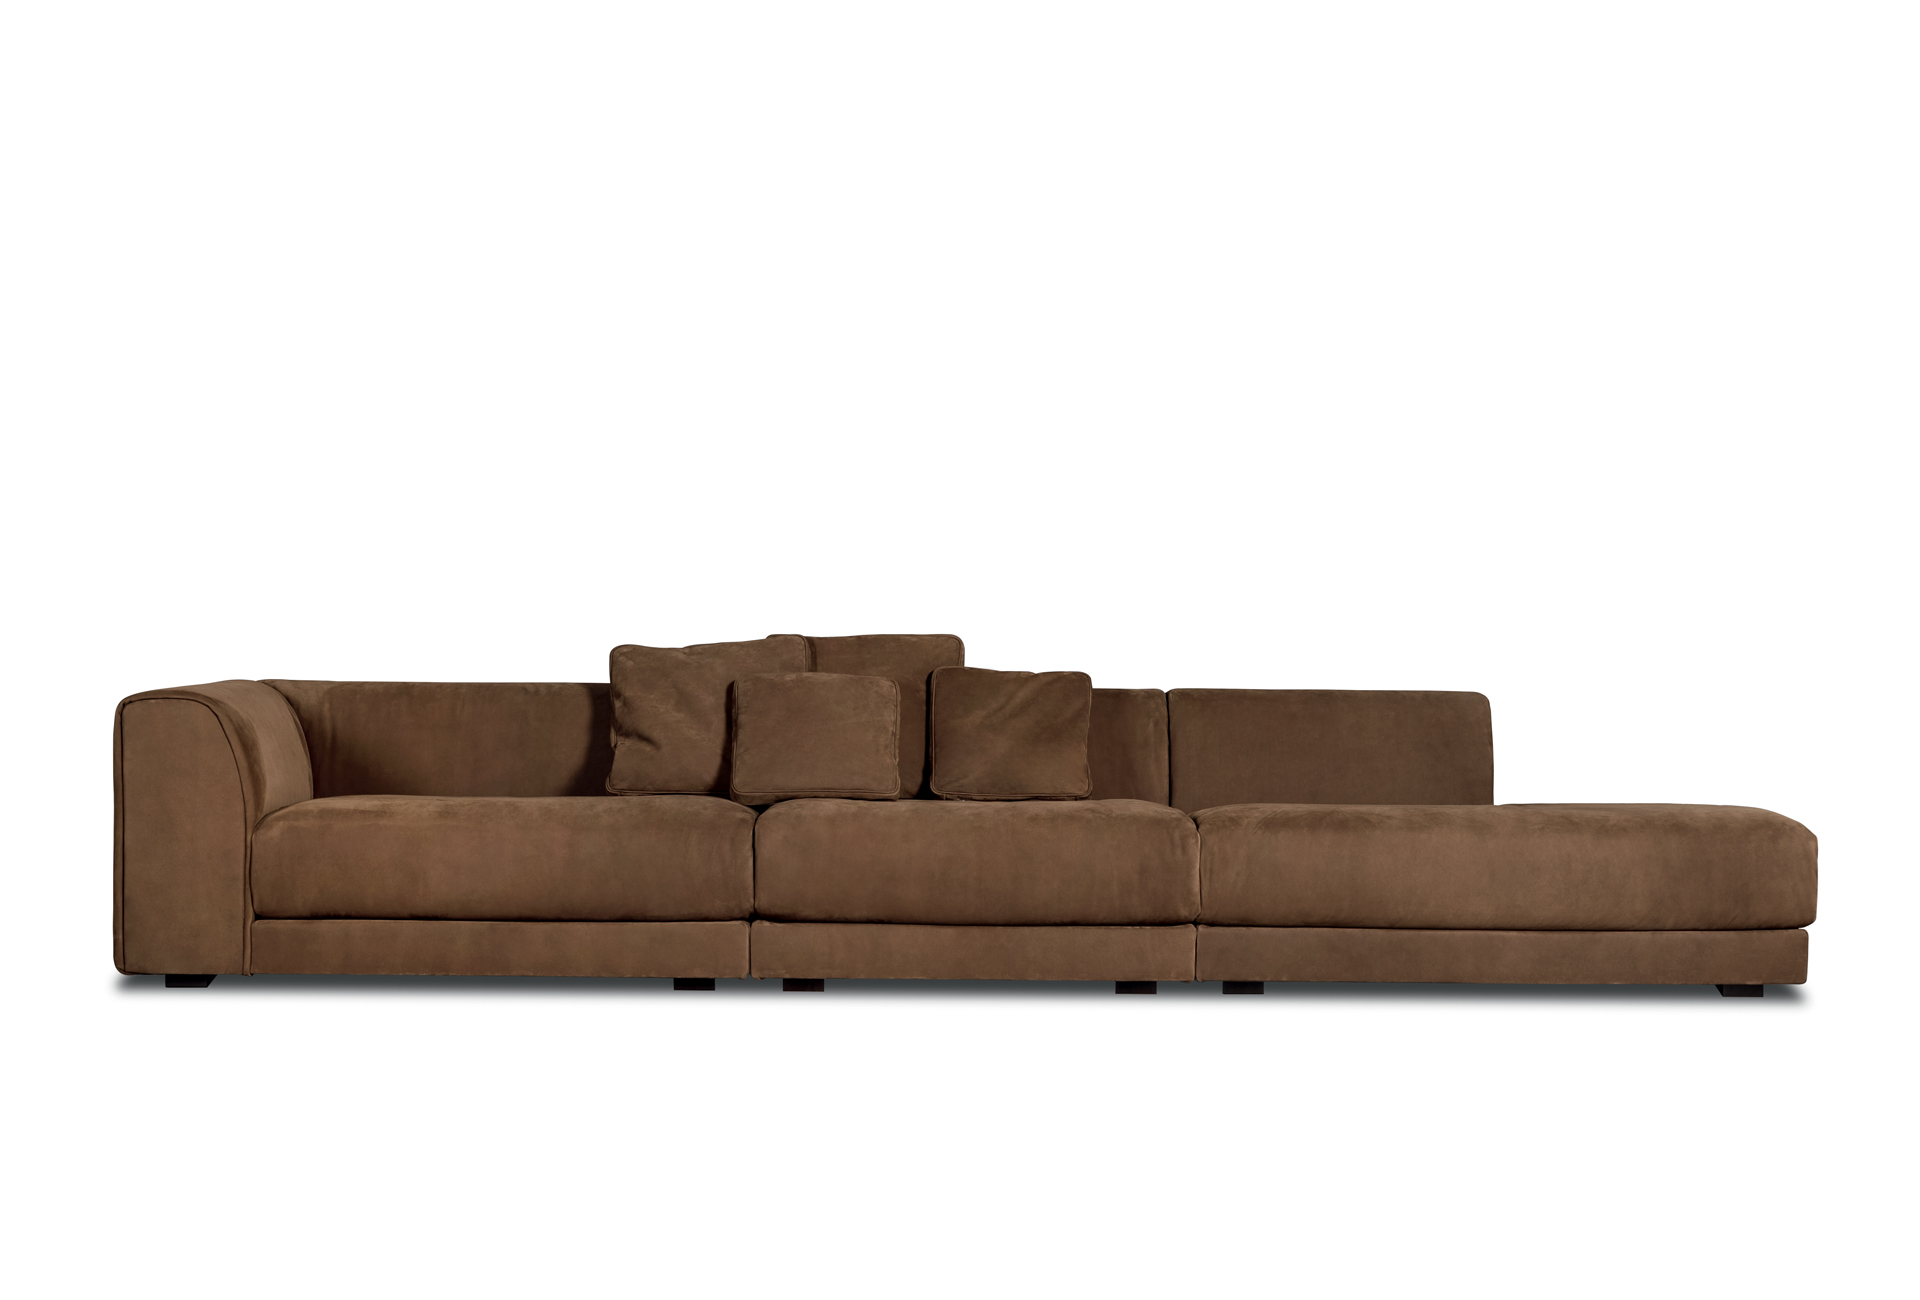 Brilliant Leather Sofa Rafael Baxter Ocoug Best Dining Table And Chair Ideas Images Ocougorg